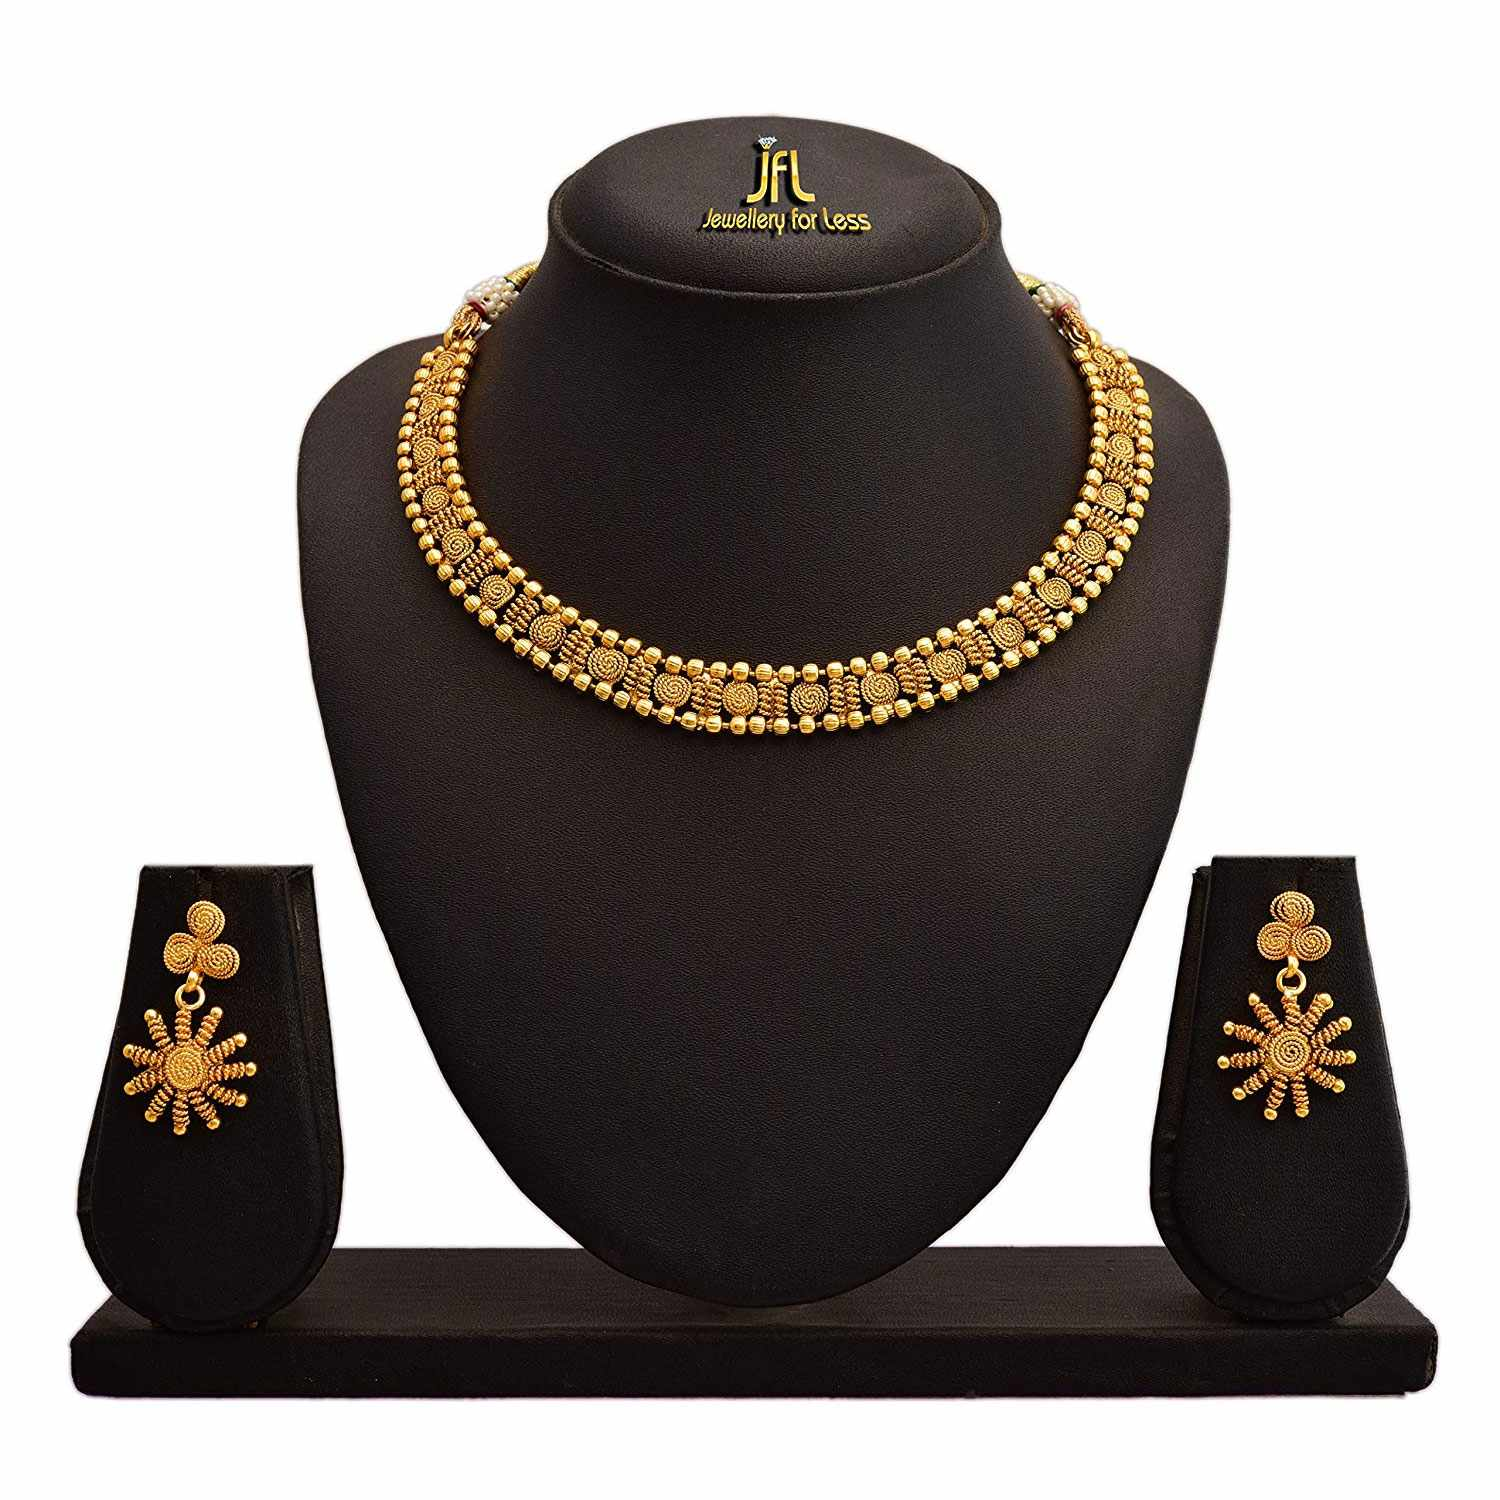 JFL - Traditional Ethnic One Gram Gold Plated Spiral Designer Necklace Set for Women.